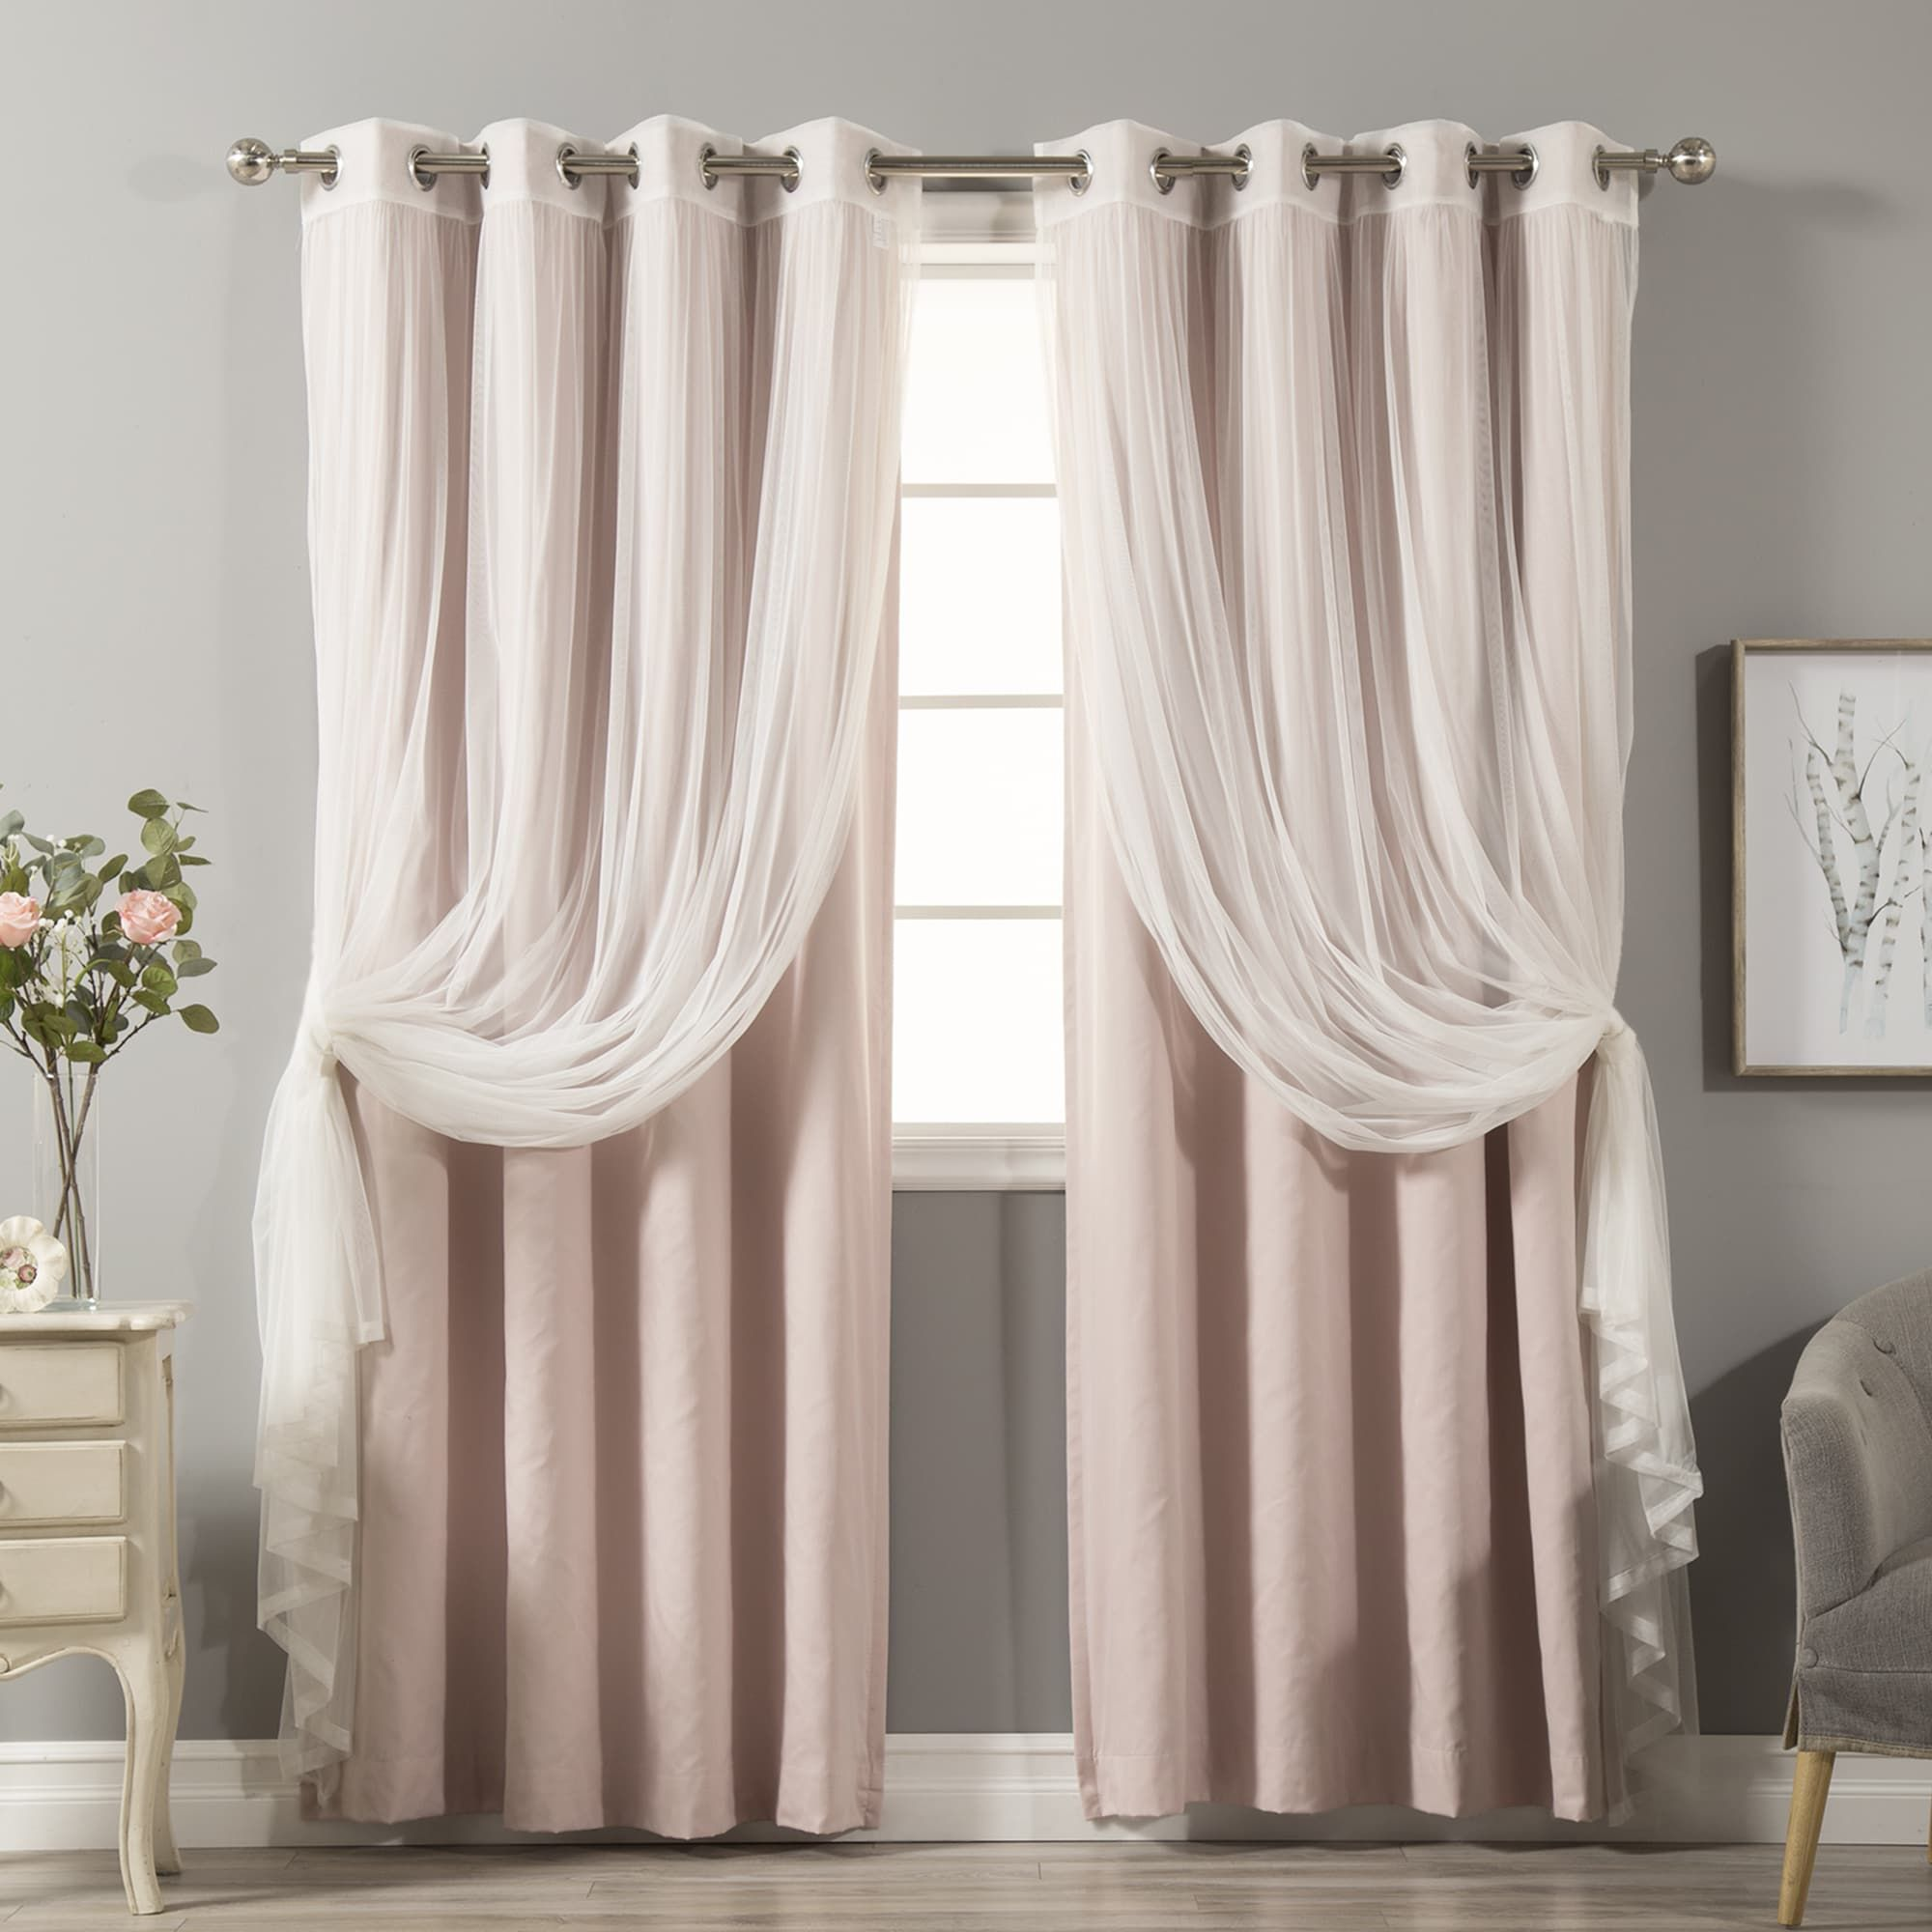 Overstock Com Online Shopping Bedding Furniture Electronics Jewelry Clothing More Curtains Living Room Curtain Decor Living Room Decor Curtains #silver #curtains #living #room